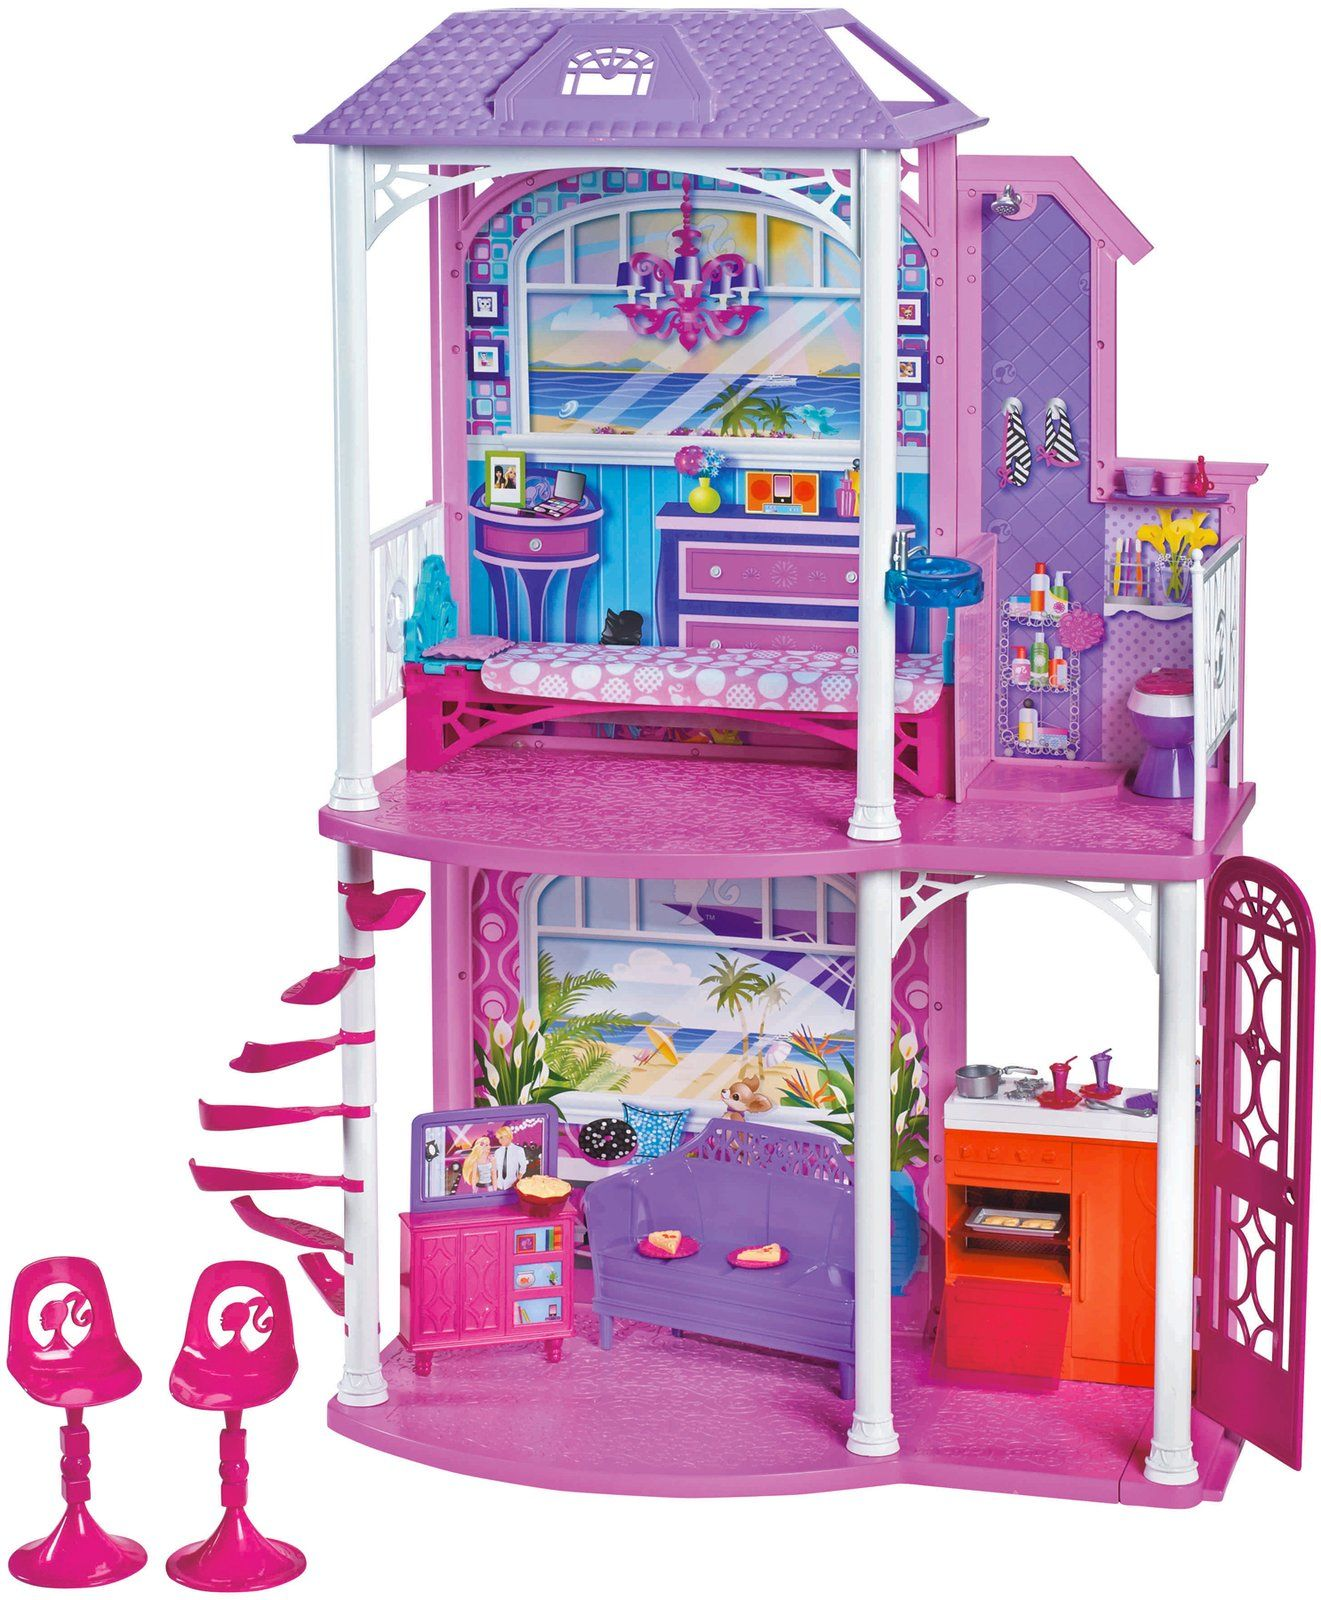 Barbie 2 Story Beach House With Two Stories And Four Areas Of Play In The Barbie 2 Story Beach House The Fun Need Barbie House Barbie Doll House Beach House